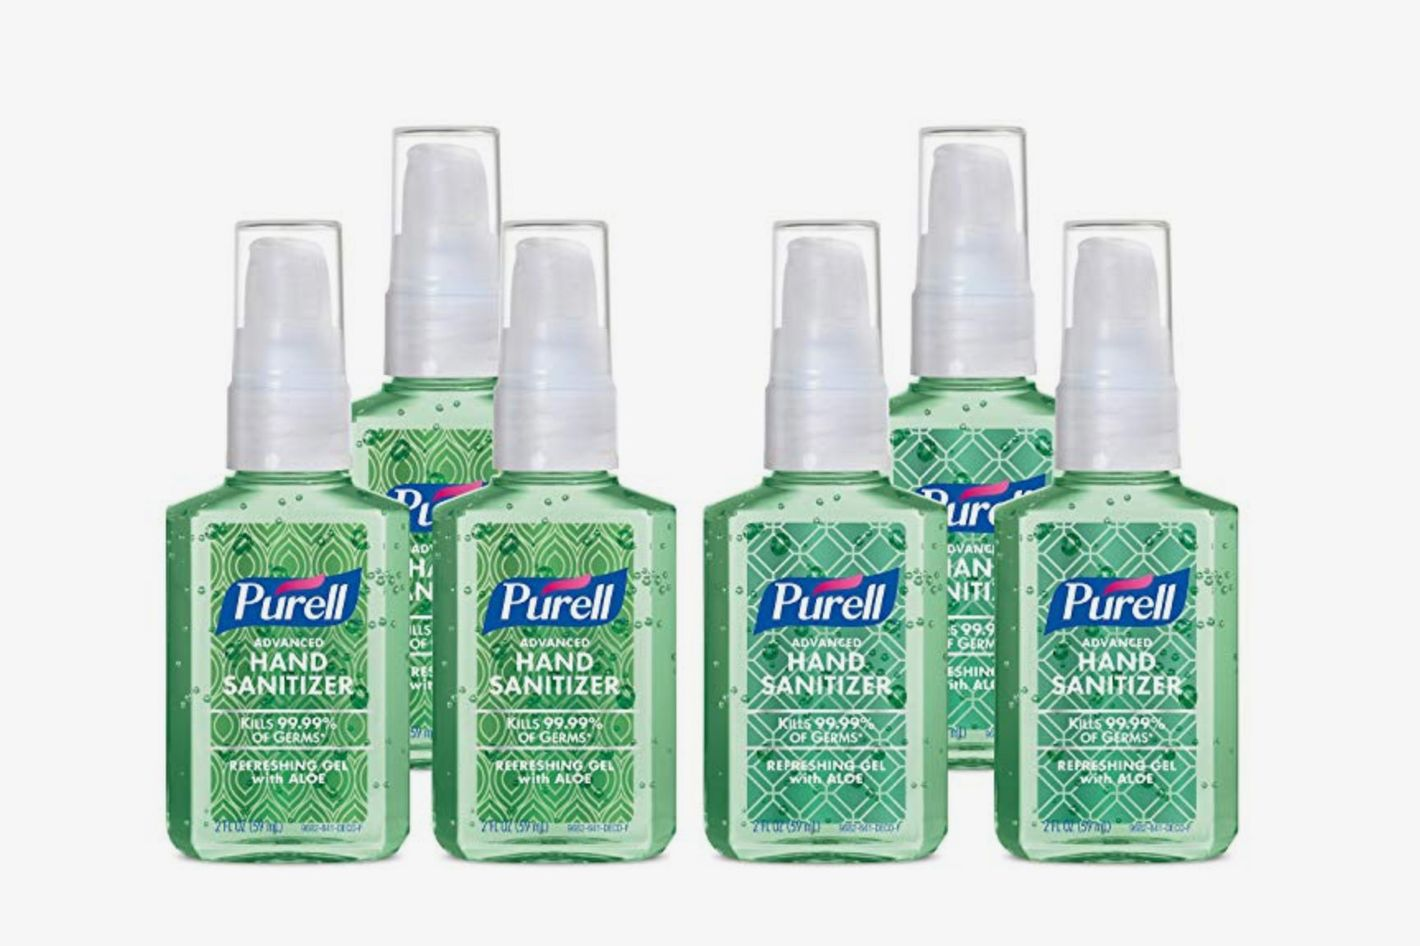 PURELL Advanced Hand Sanitizer Gel with Aloe